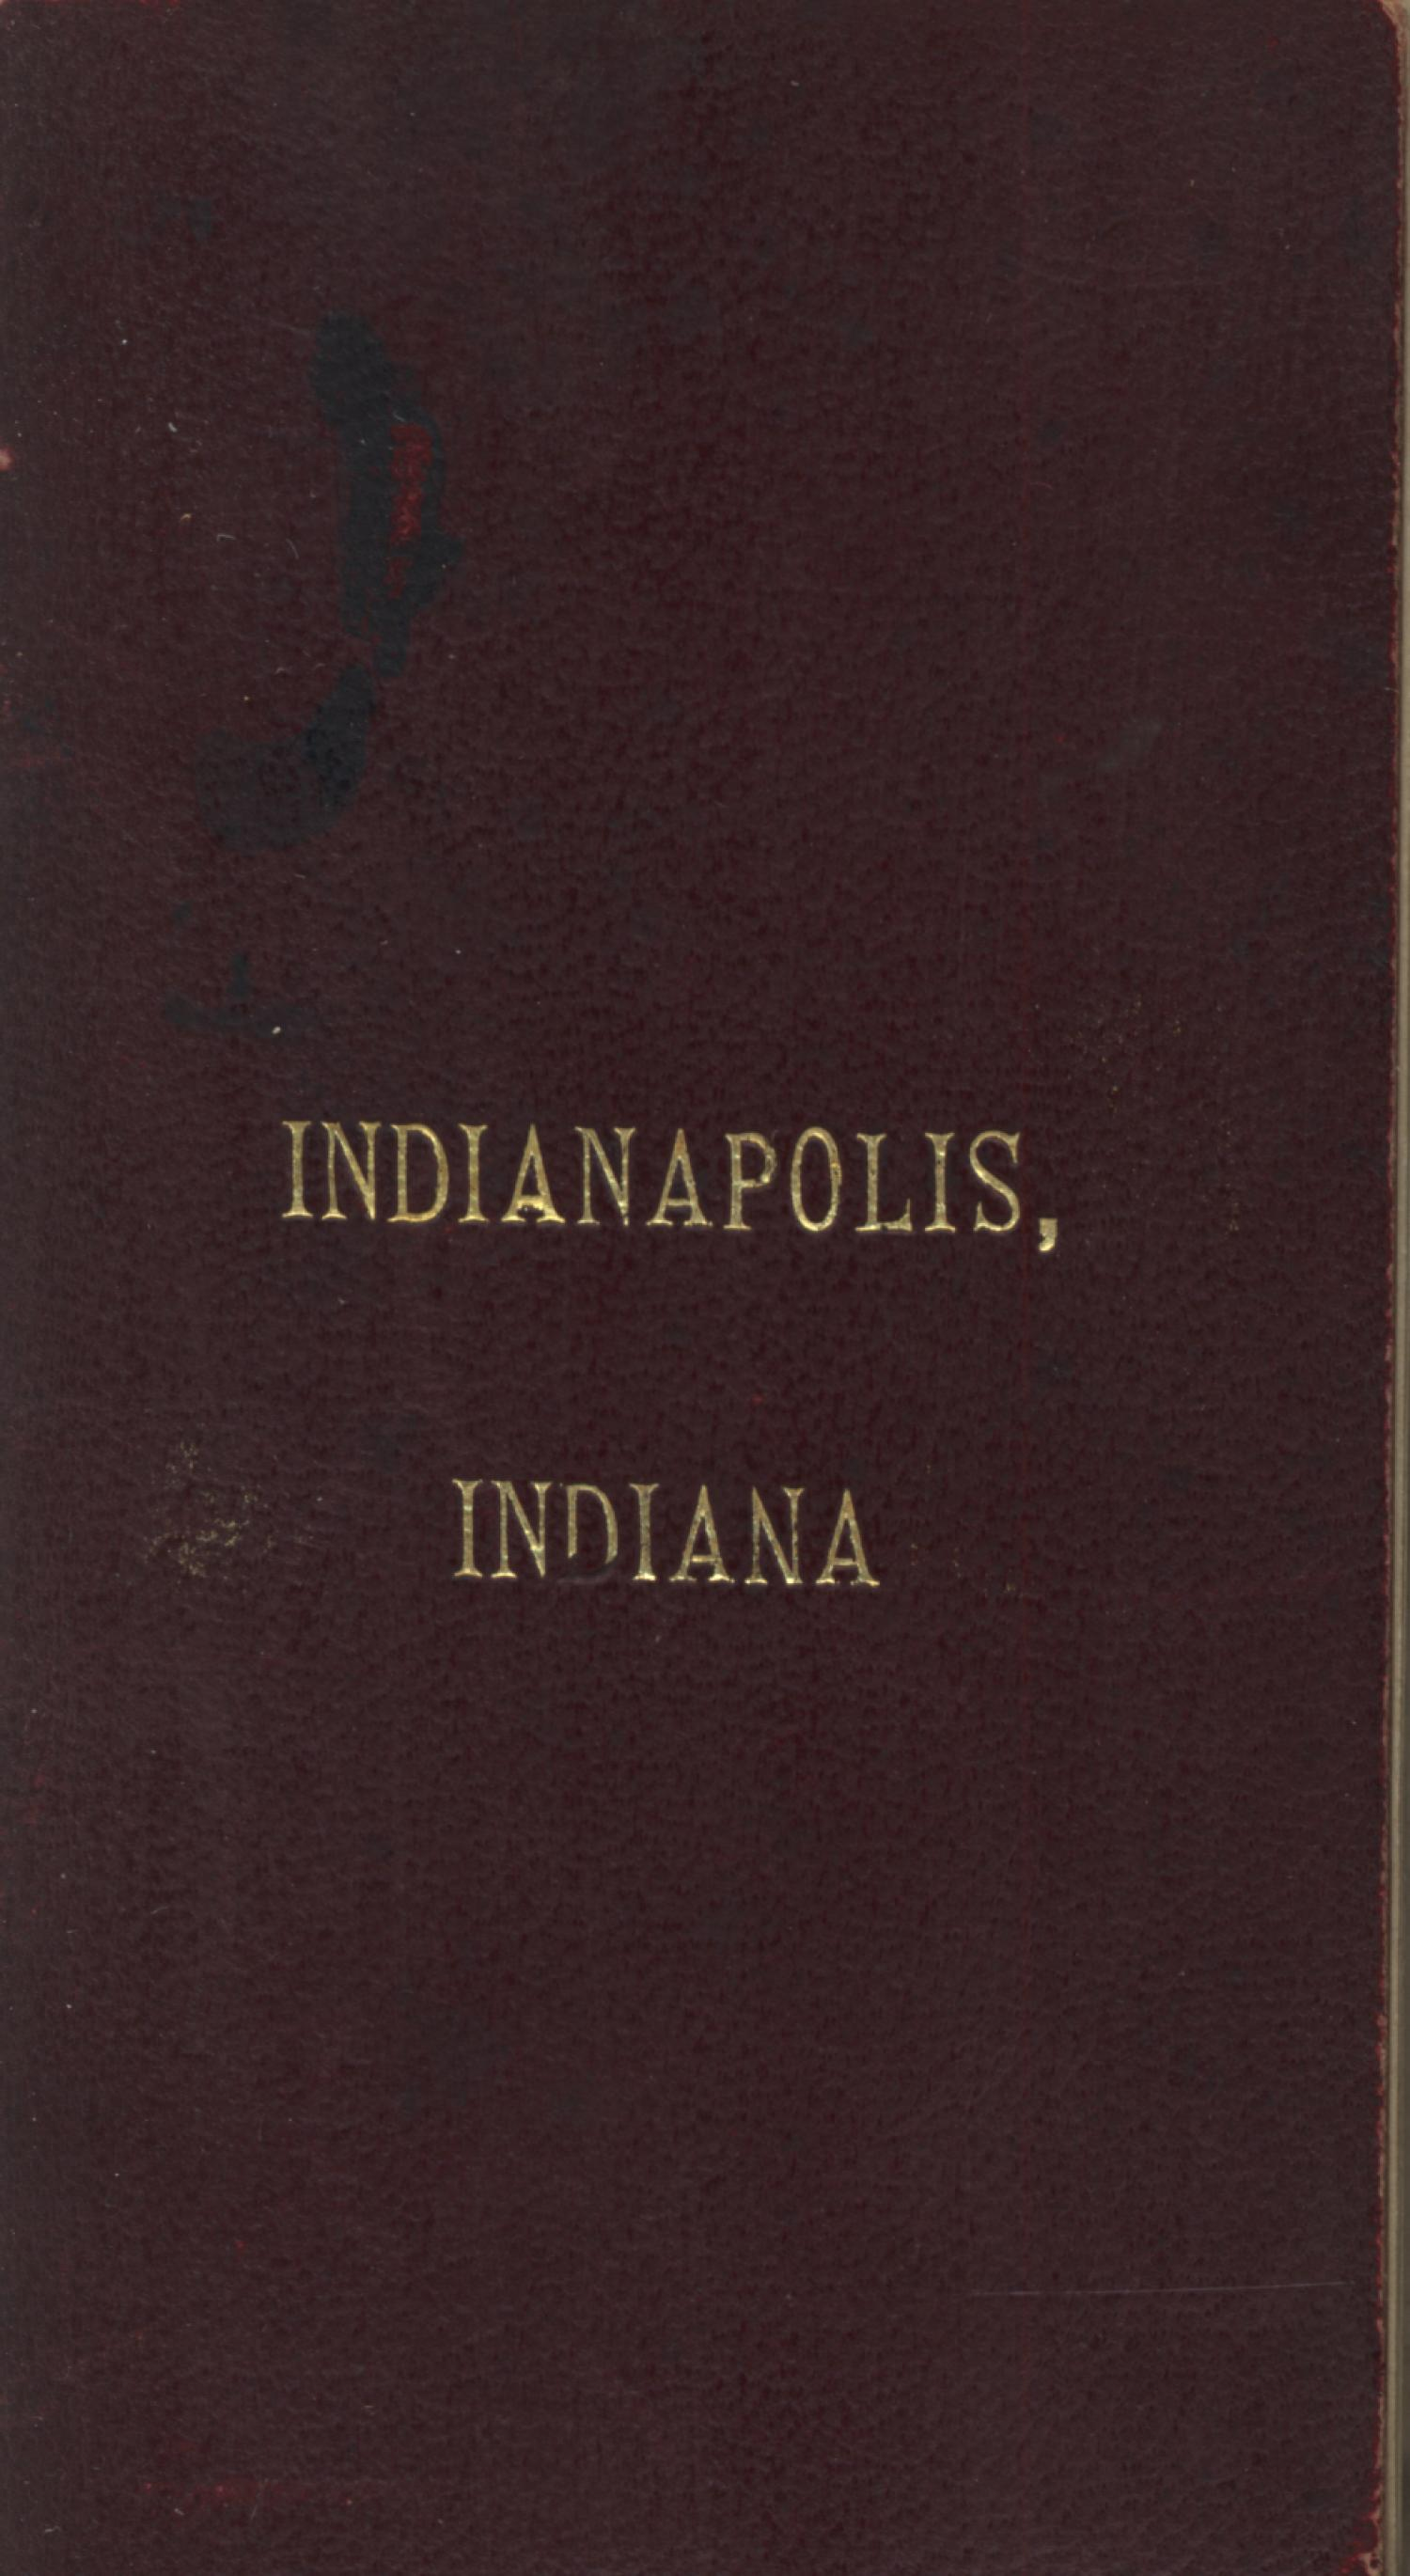 Map of Indianapolis [Accompanying Text]., Explanation and supporting information related to map that shows late nineteenth century Indianapolis, Indiana street names, railroads, streetcards, cemeteries, stock yards, state fair grounds, additions, military facilities, public institutions, and select buildings and businesses.,